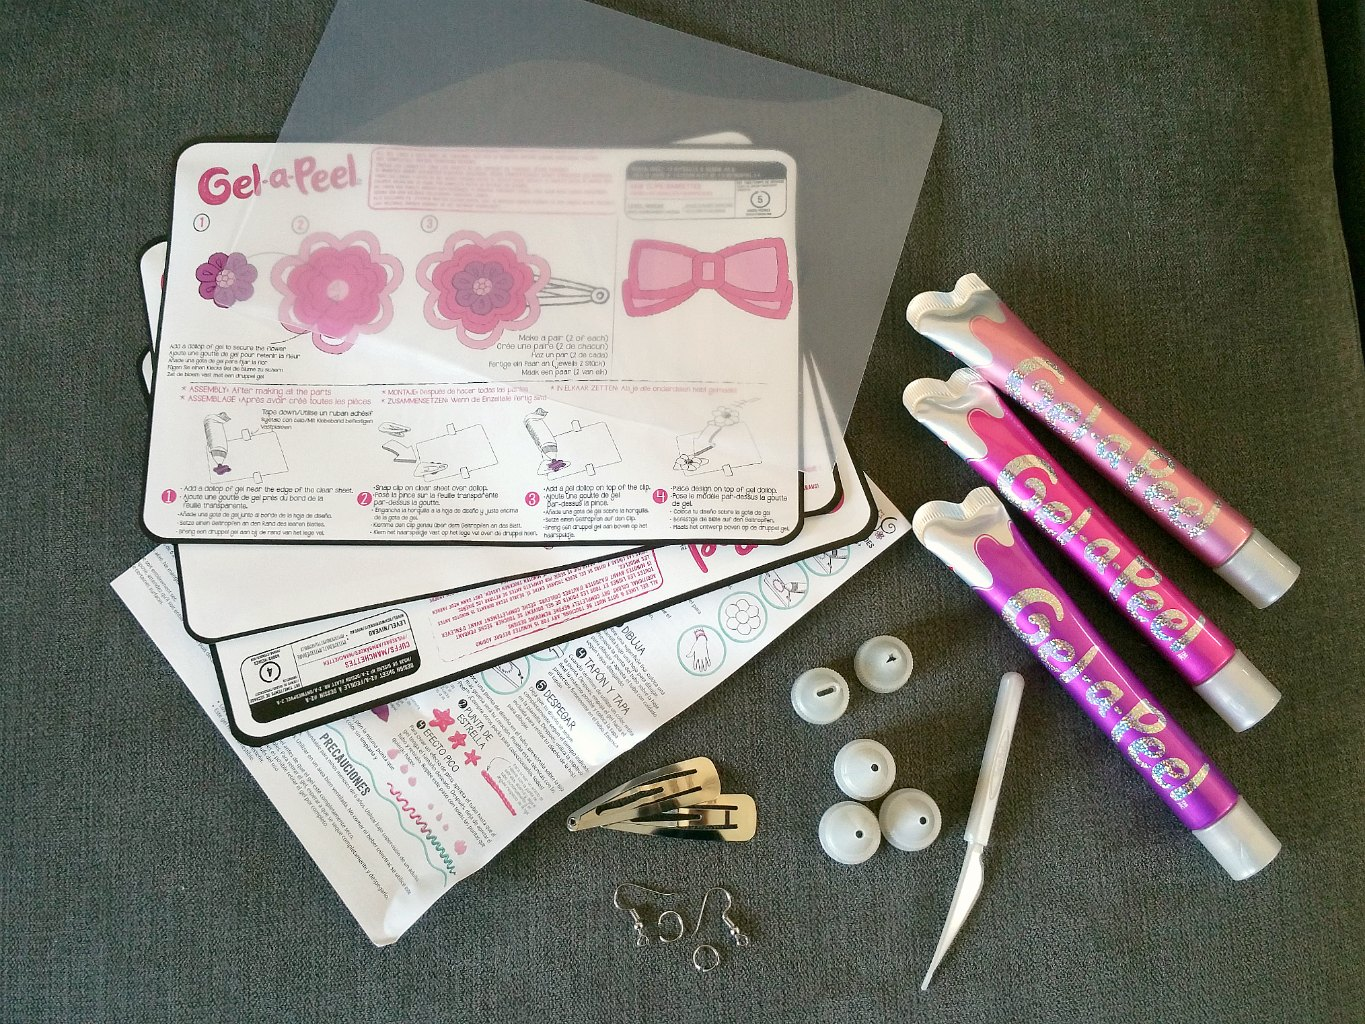 Gel-a-Peel silicone gel jewellery making kit, Christmas Crafts Ideas, Make your own Christmas decorations